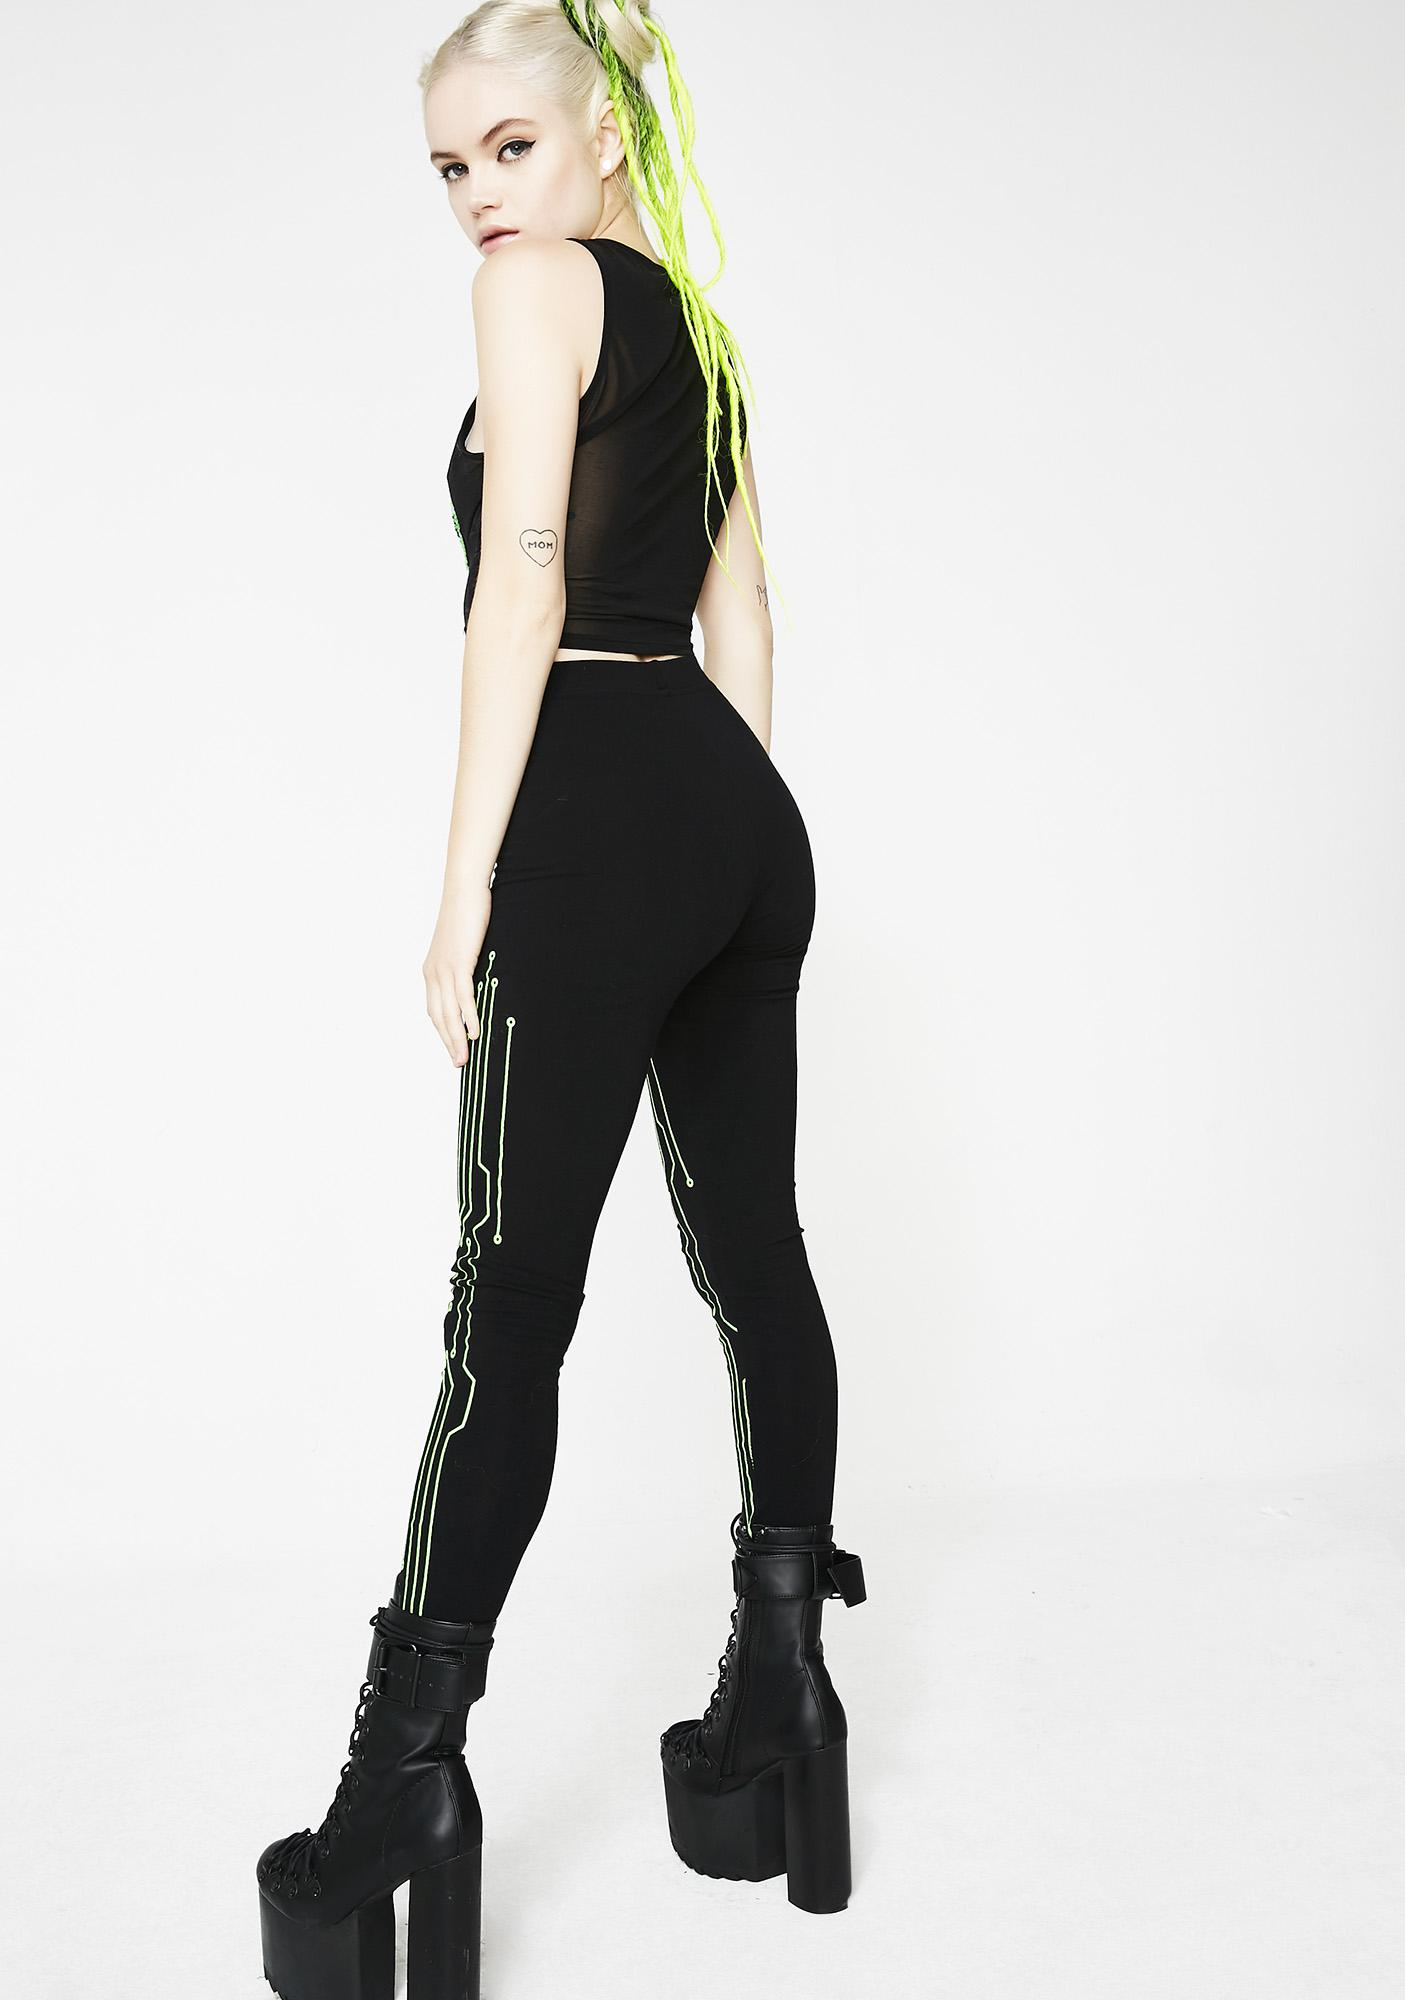 Cyberdog Body Circuit Leggings